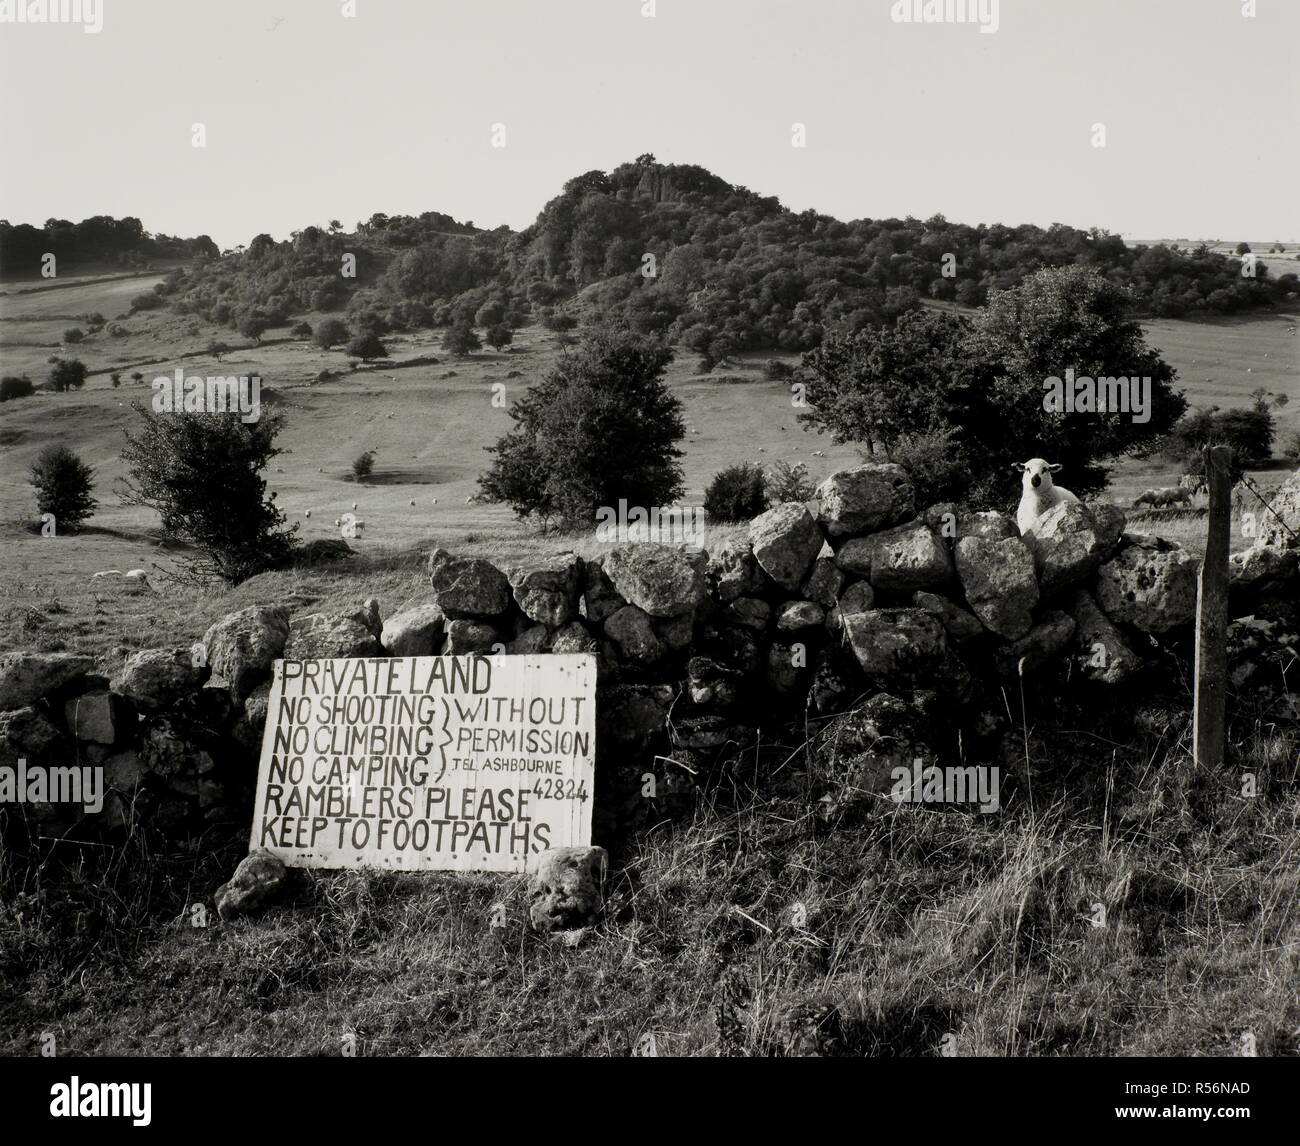 Countryside of Brassington Derbyshire. Monochrome. 1989. Our Forbidden Land Series. Source: FG176-7180-17. Author: Godwin, Fay. - Stock Image